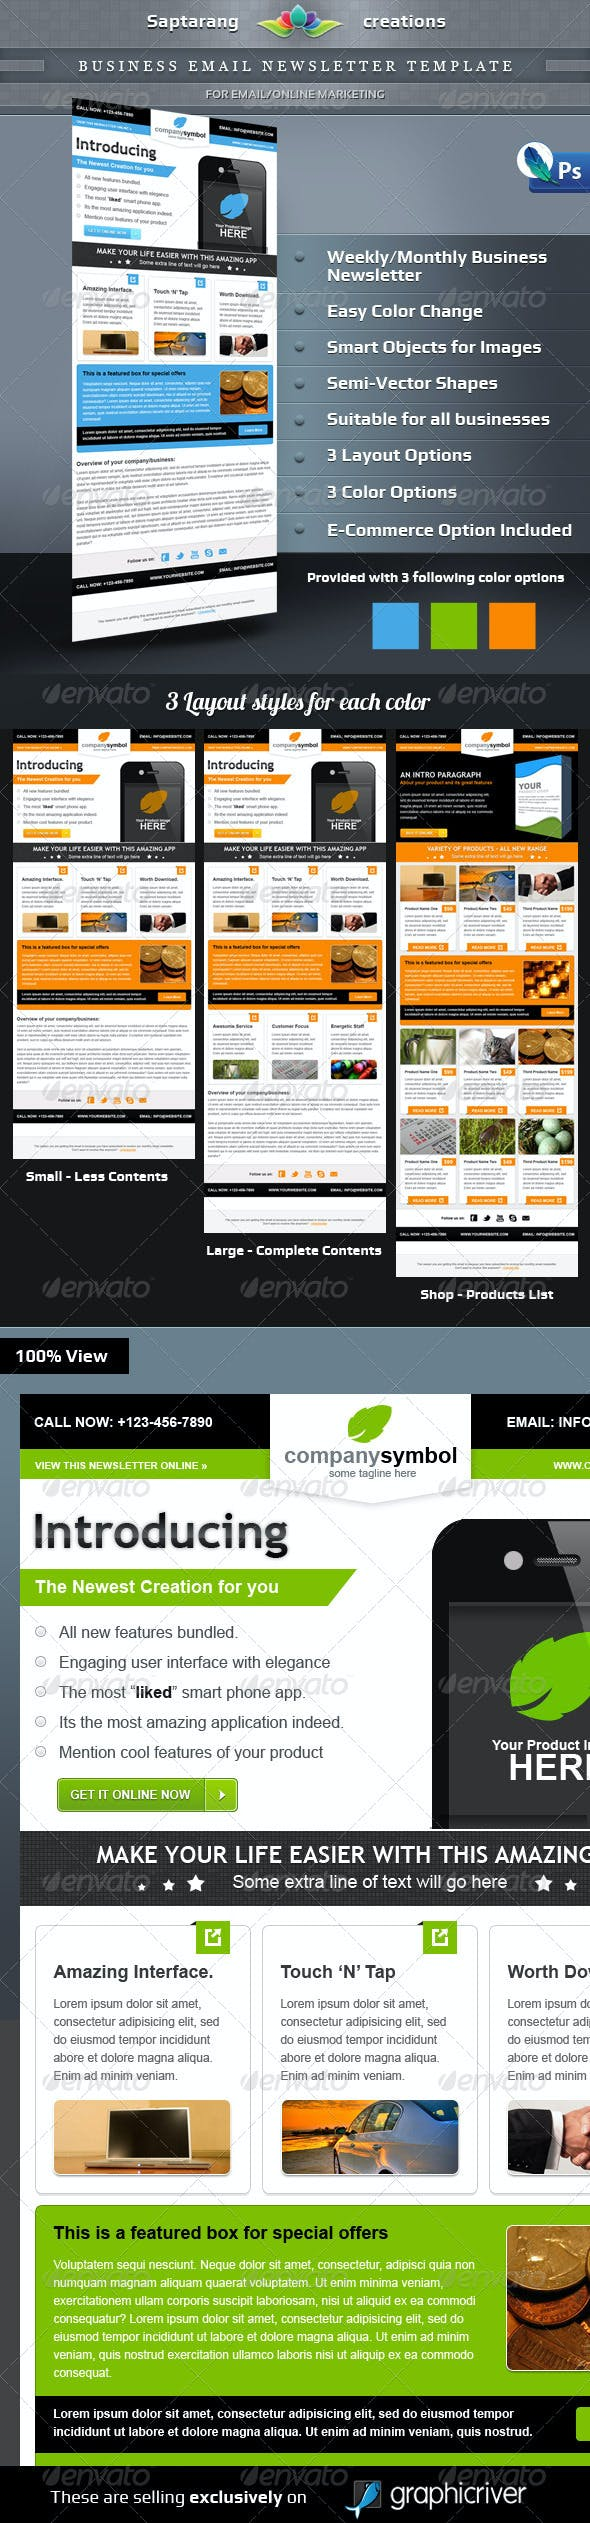 business email newsletter template by saptarang graphicriver